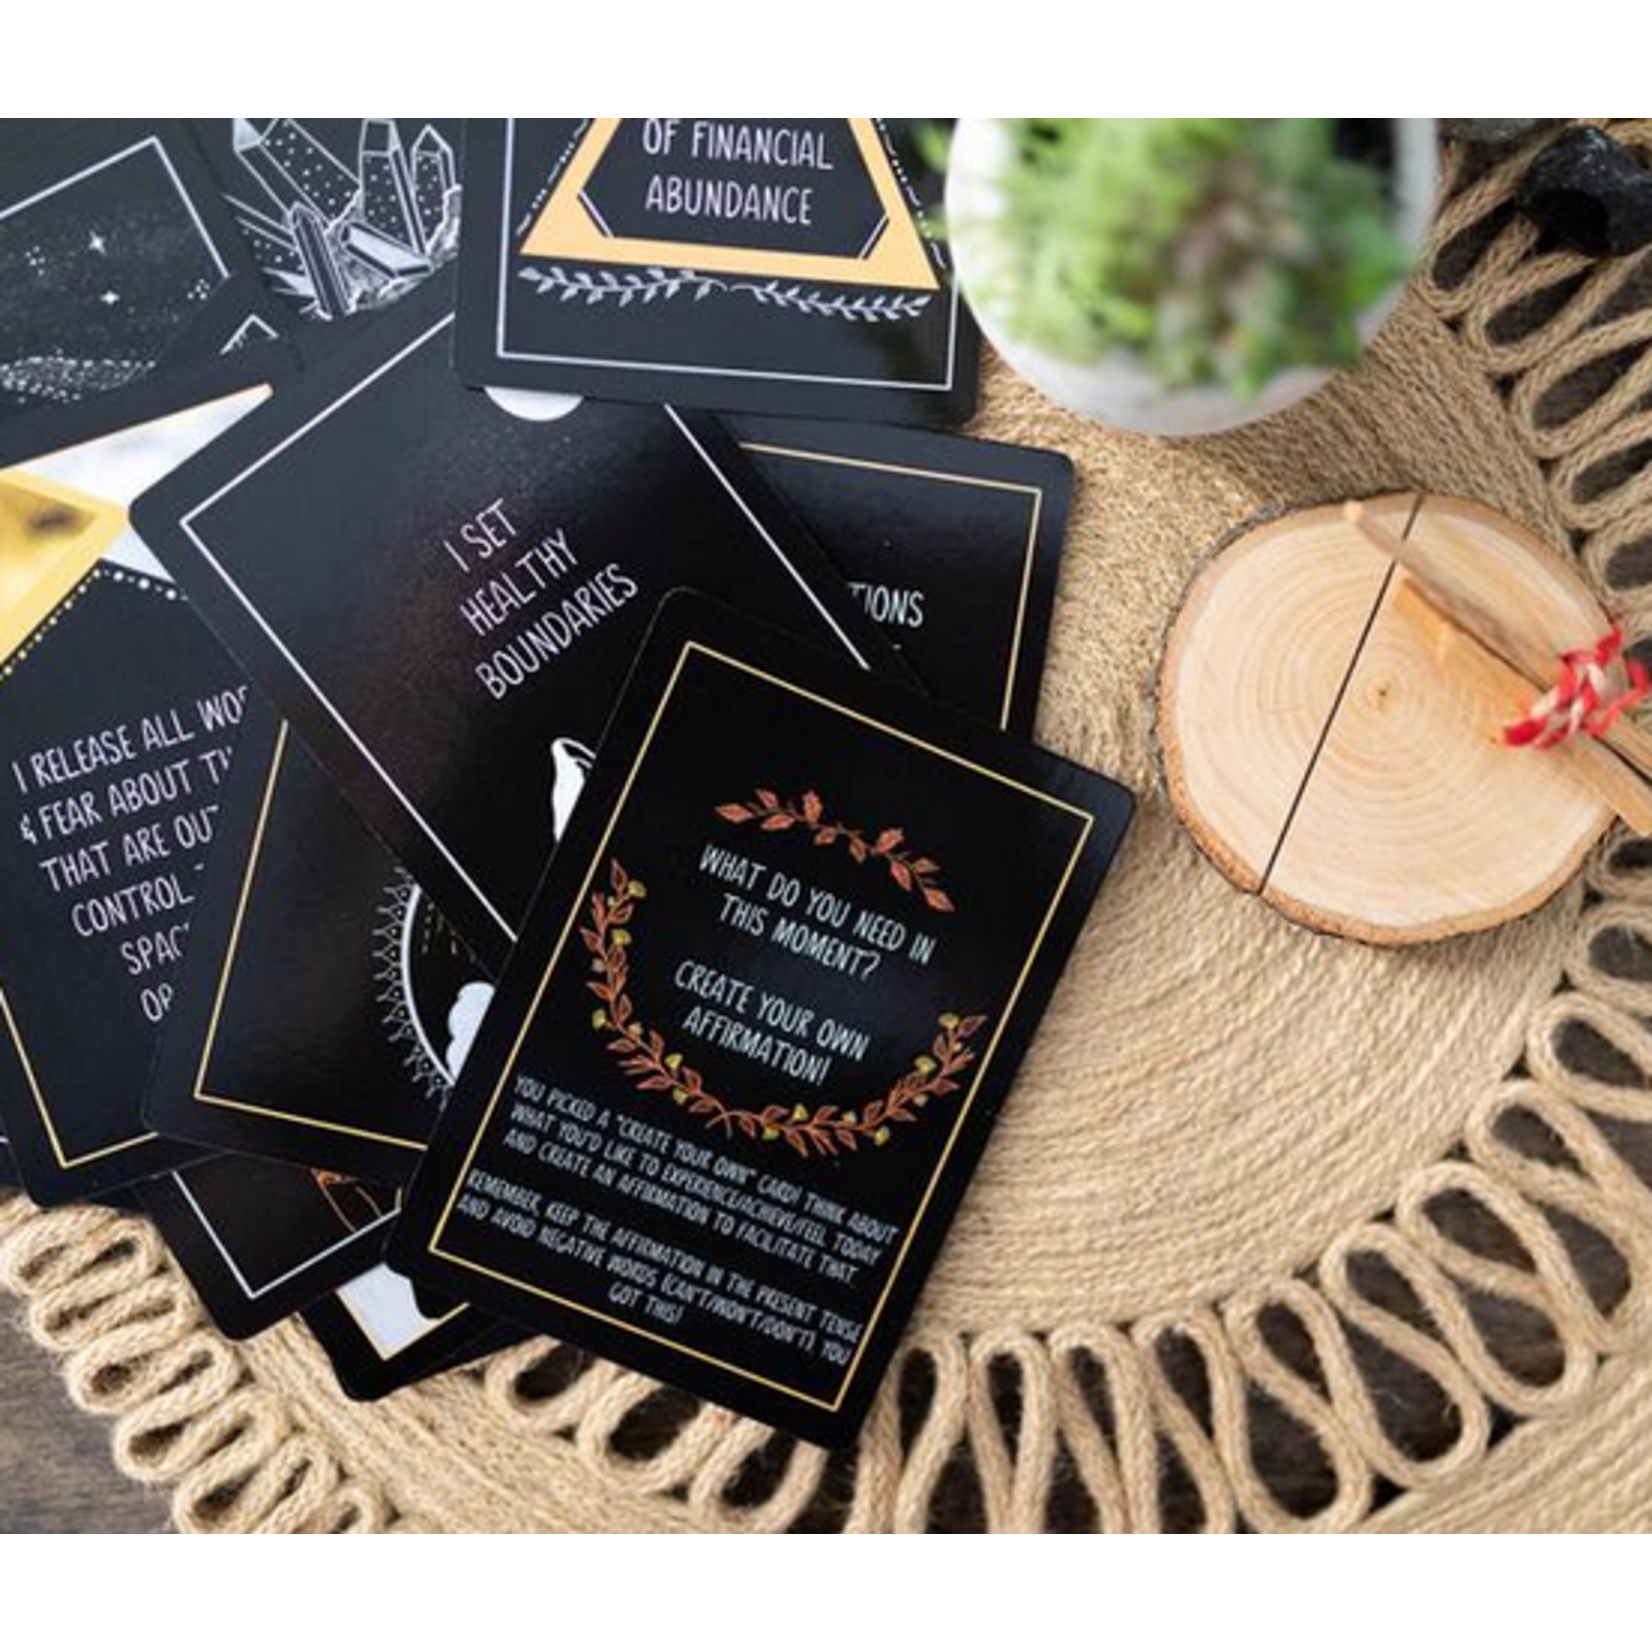 The Salvaged Sawhorse Wholeness Affirmation Card Deck